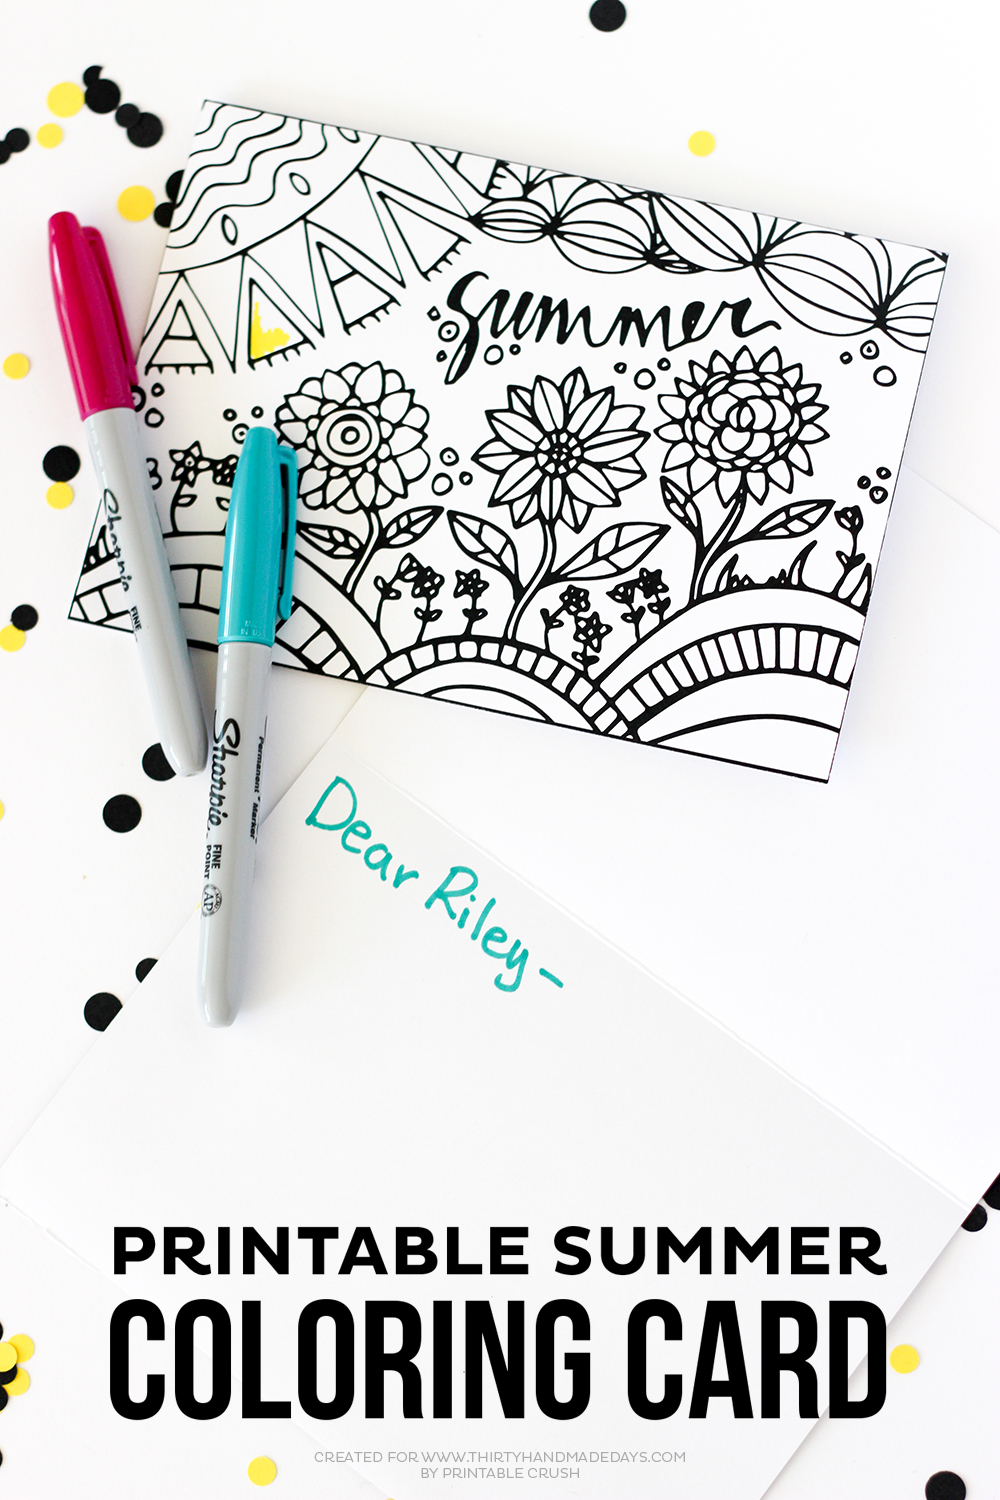 This Summer Printable Coloring Card Is A Great Way To Keep The Kids Busy Over